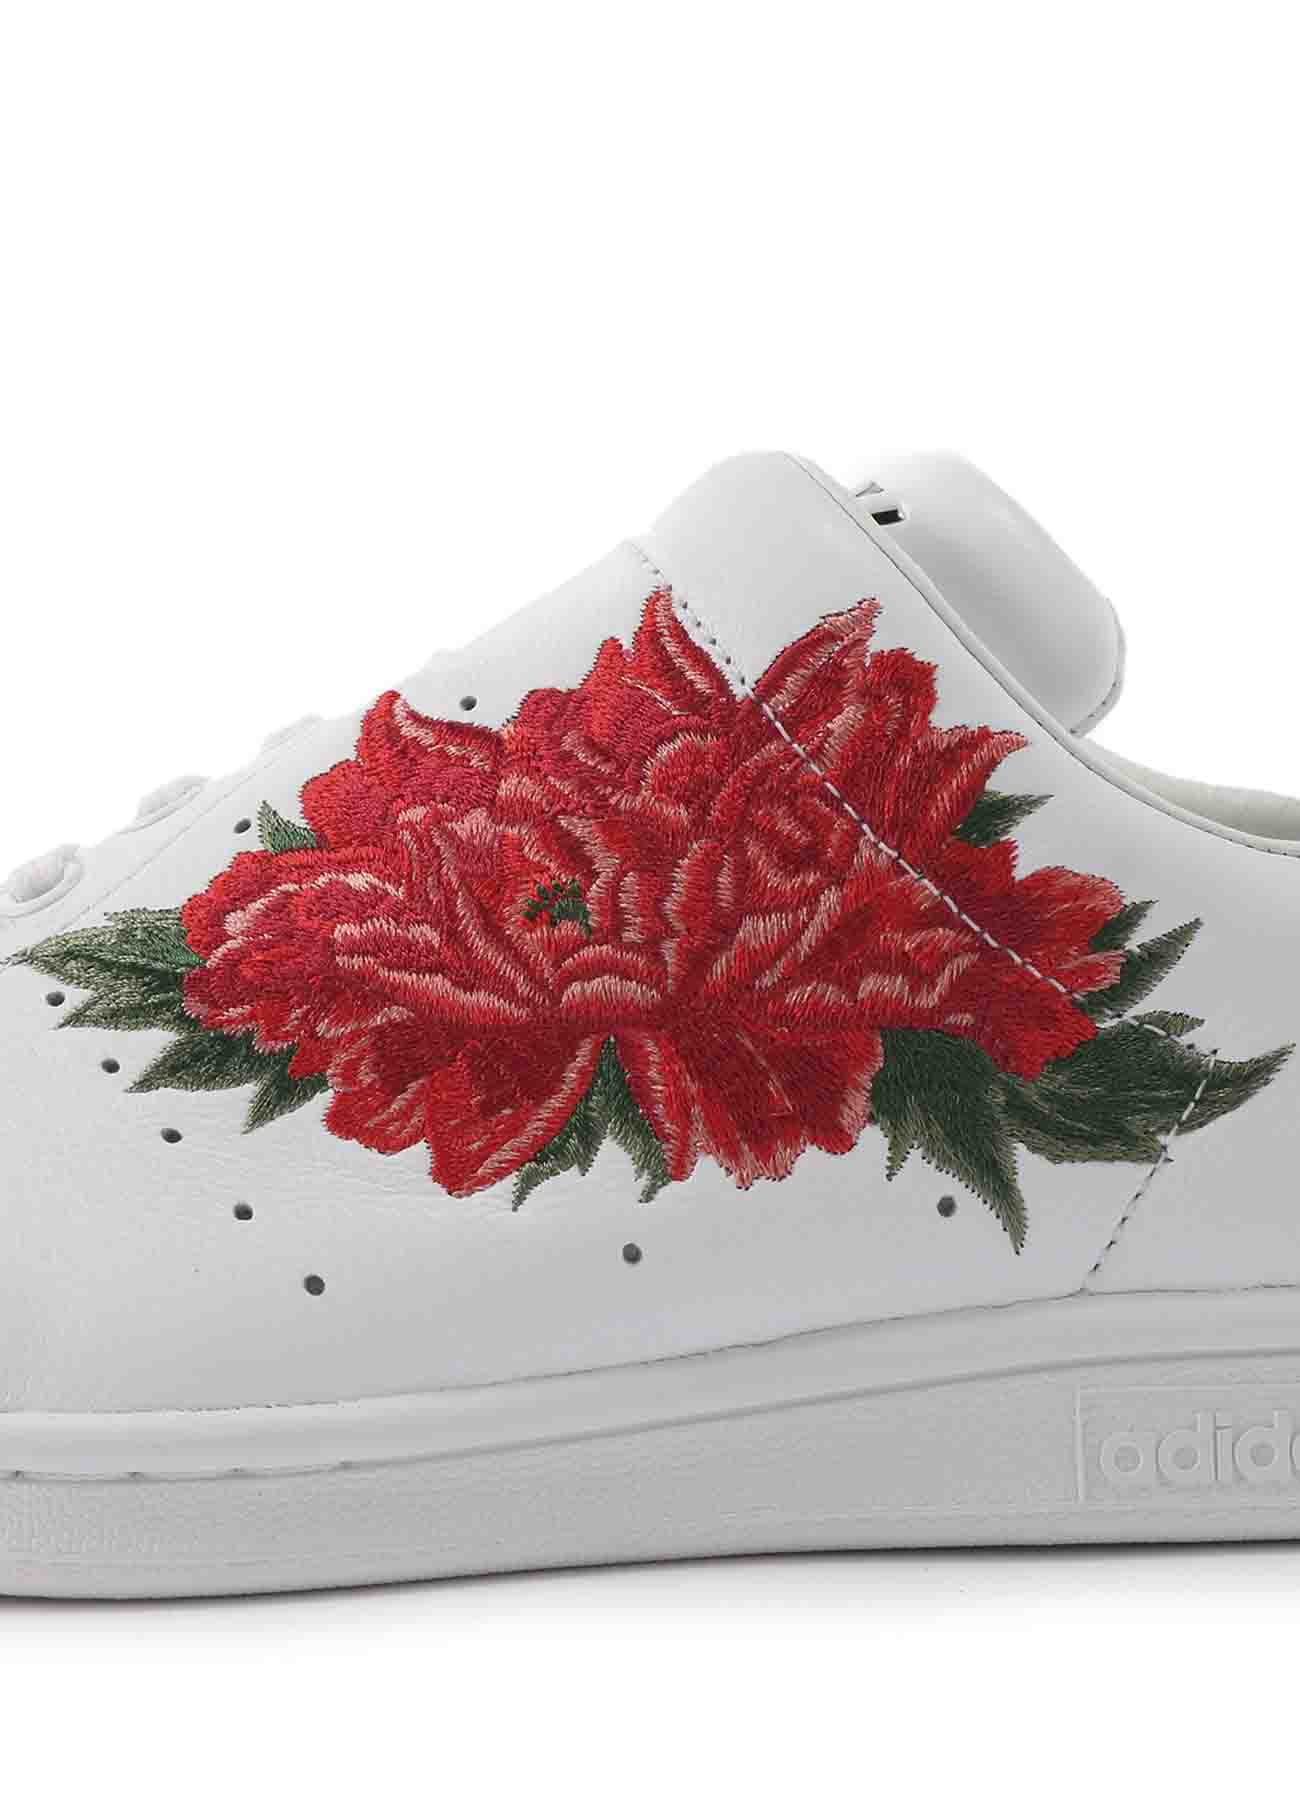 Y's x adidas Y's Diagonal Stan Smith Floral